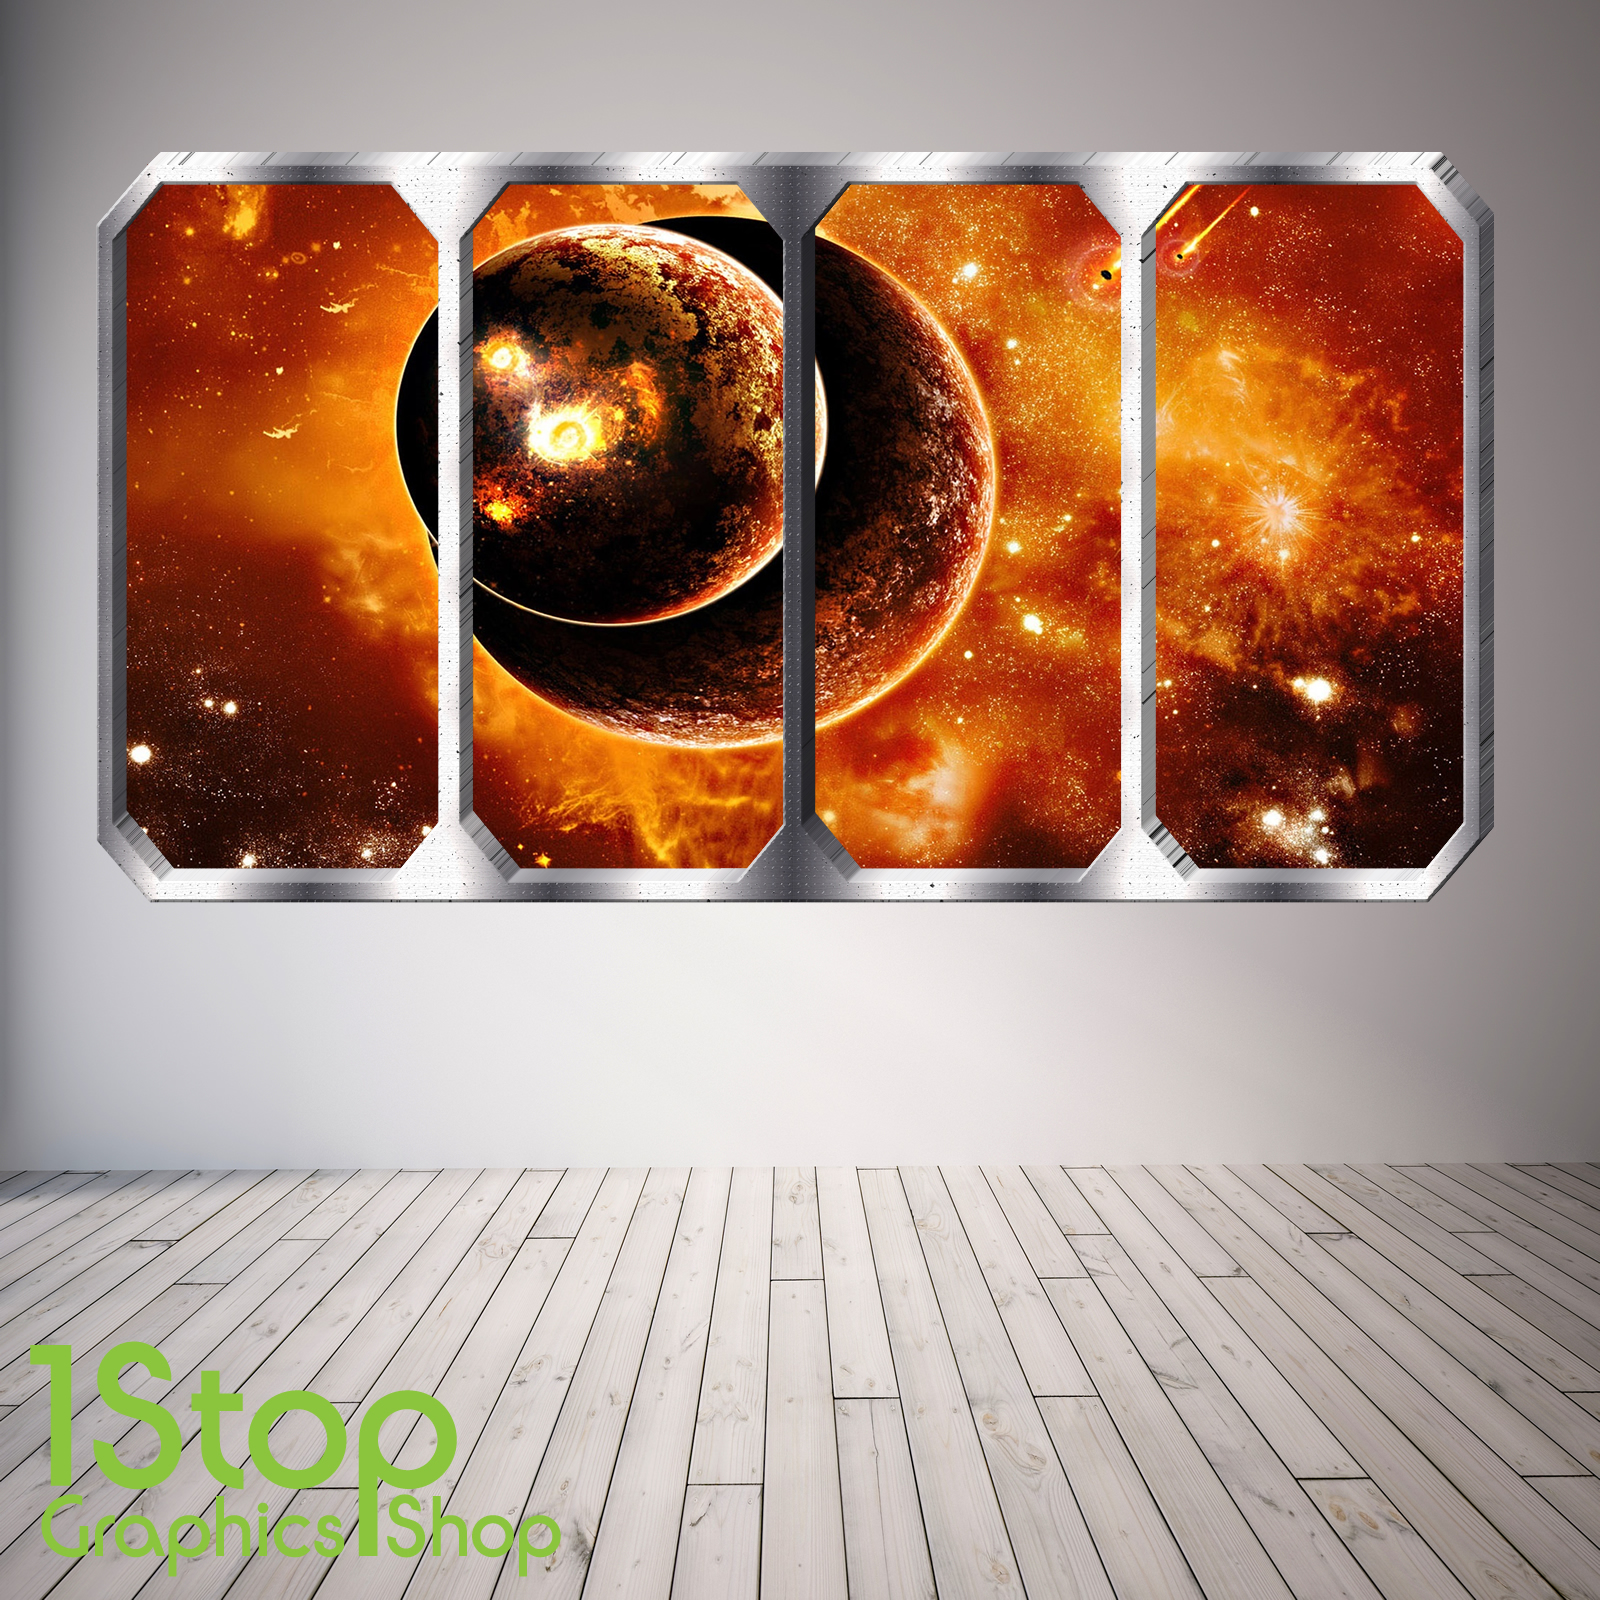 SPACE PLANET WINDOW WALL STICKER FULL COLOUR EARTH PLANETS SPACE SHIP SP6